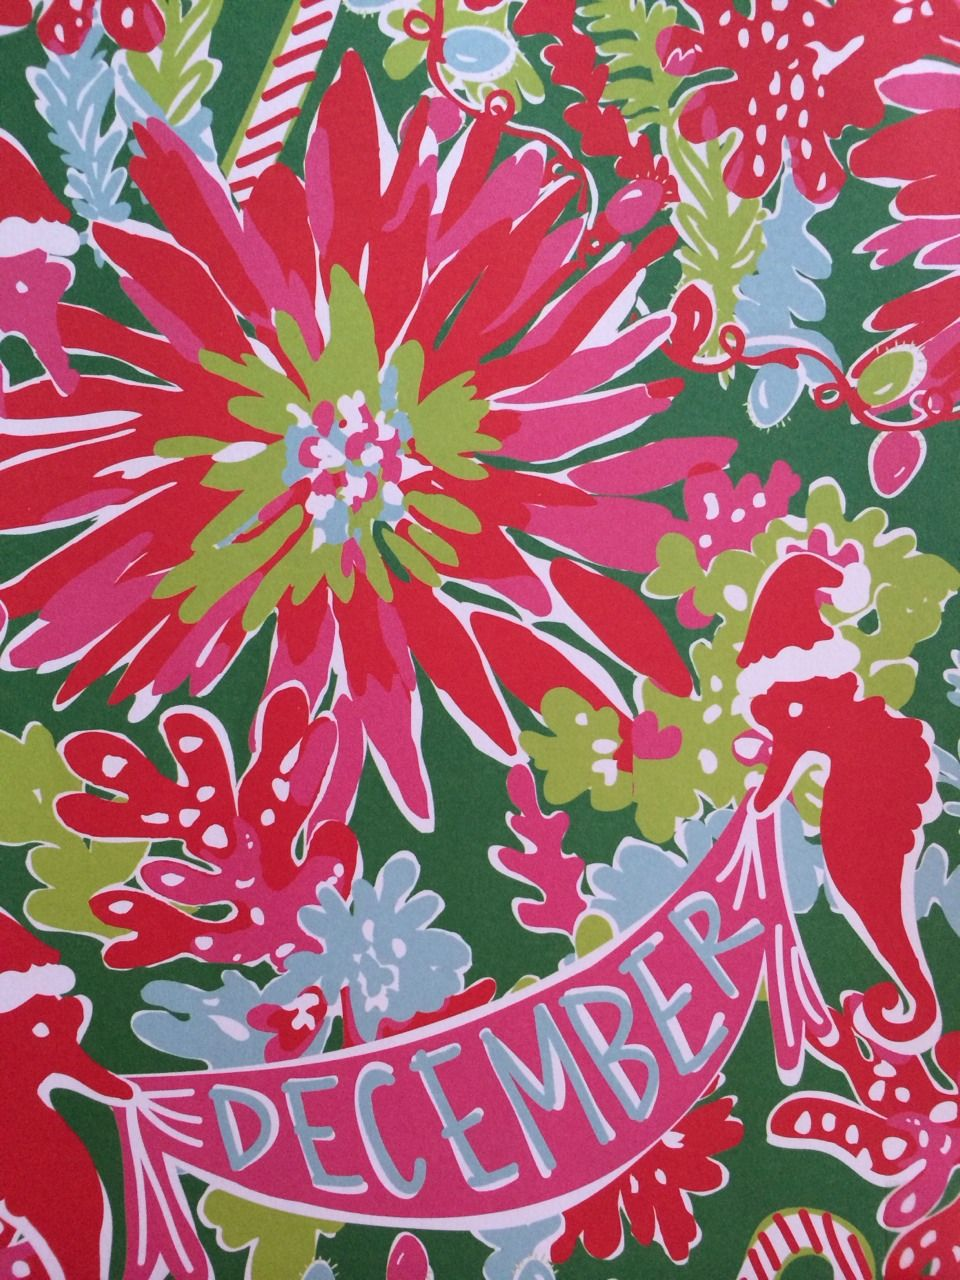 Lilly Pulitzer Fall Wallpaper Lilly Pulitzer Agenda Lilly Pulitzer Prints Hello